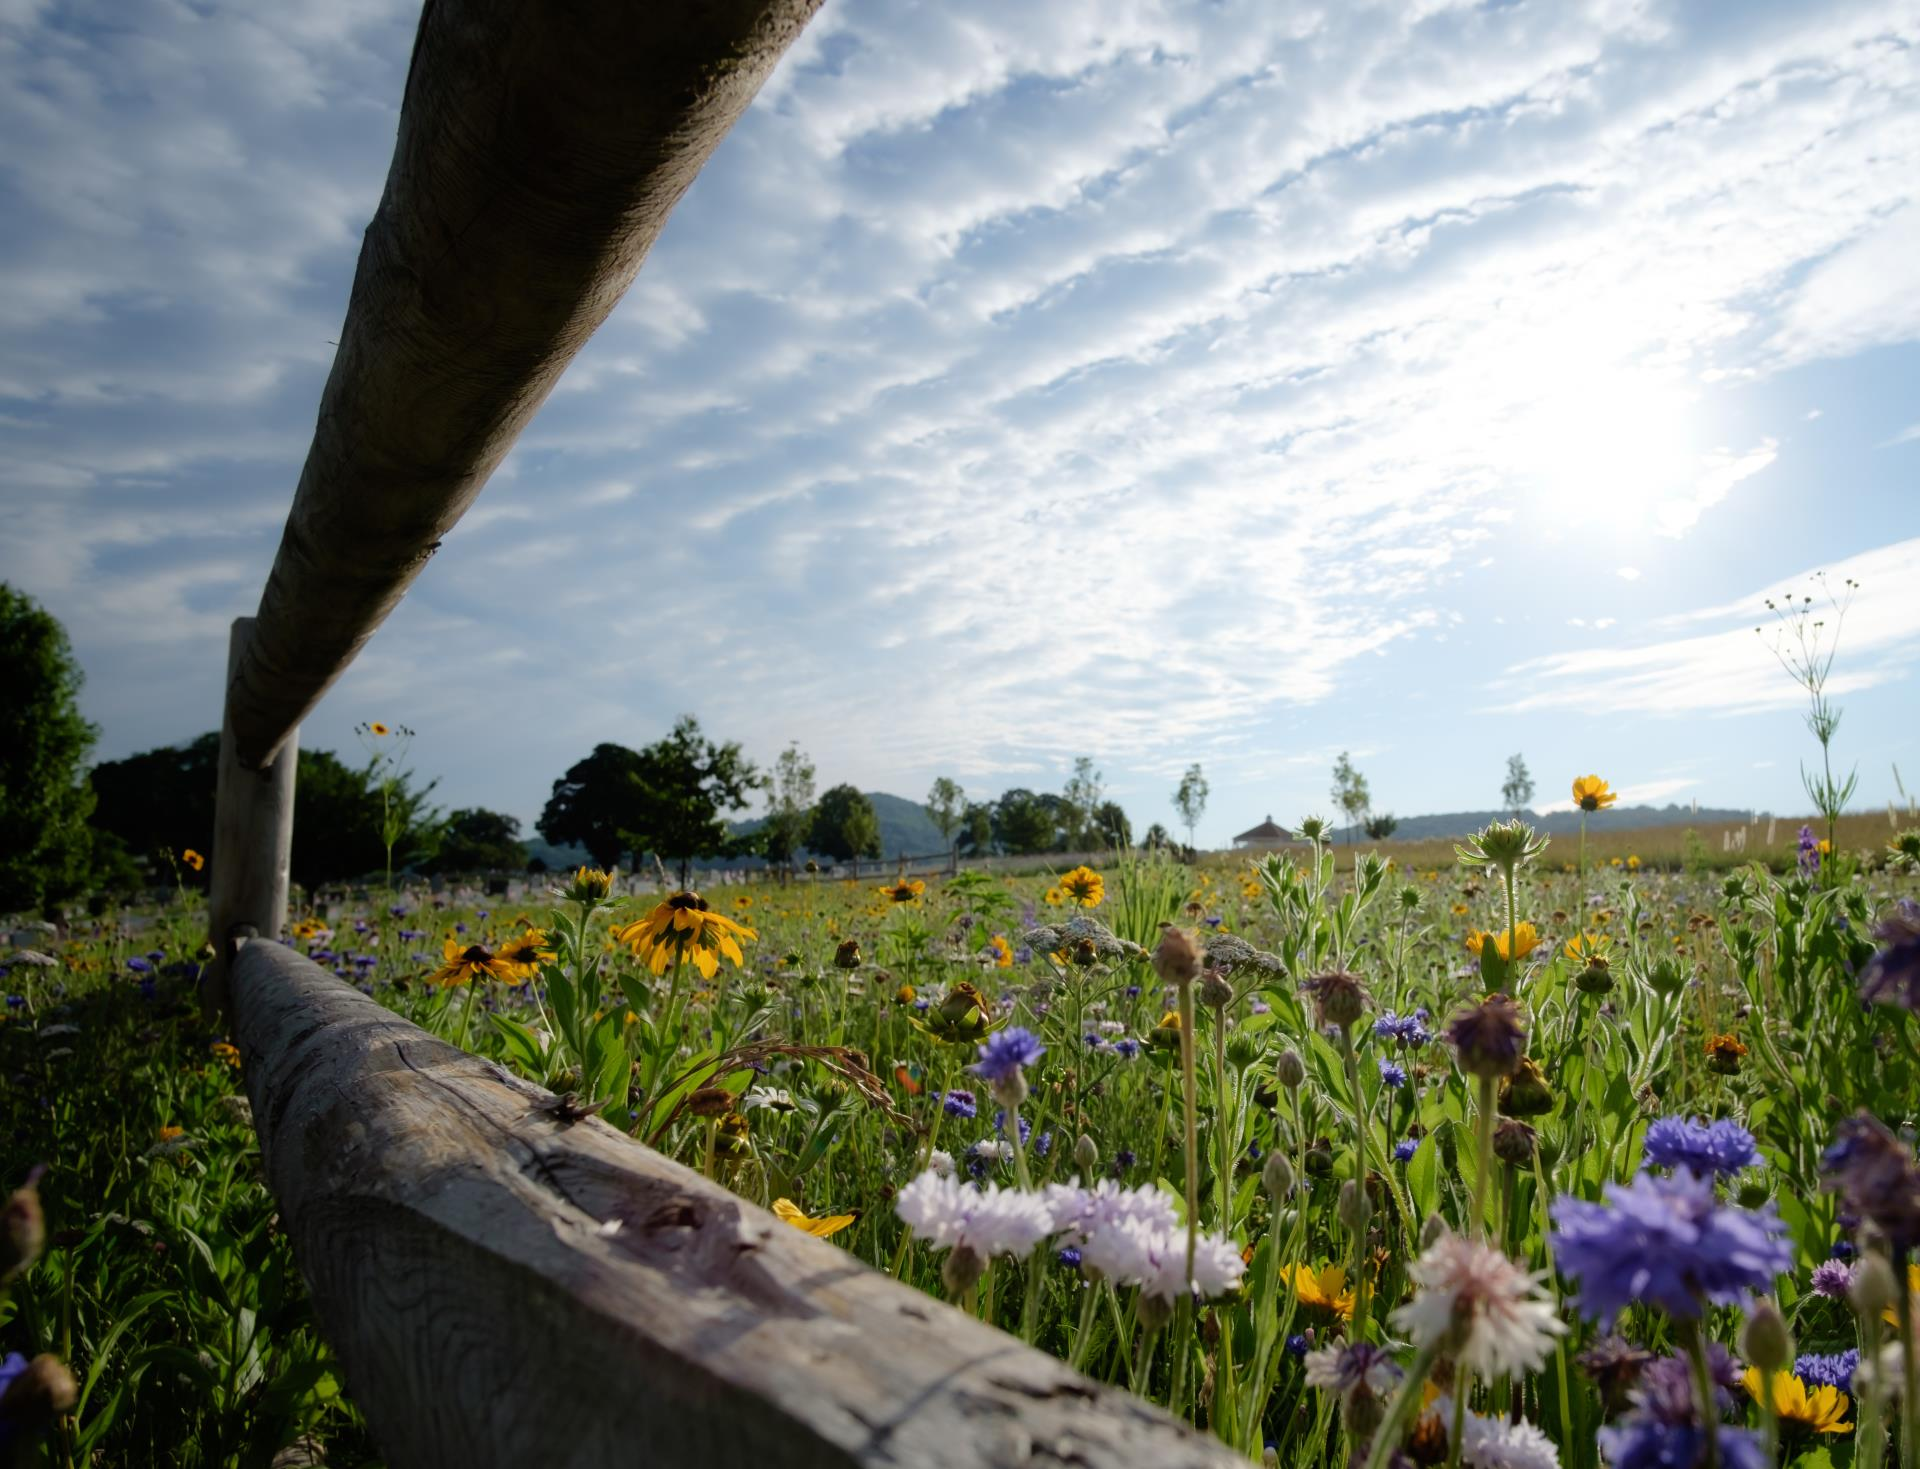 Natural Burial area with fence and flowers